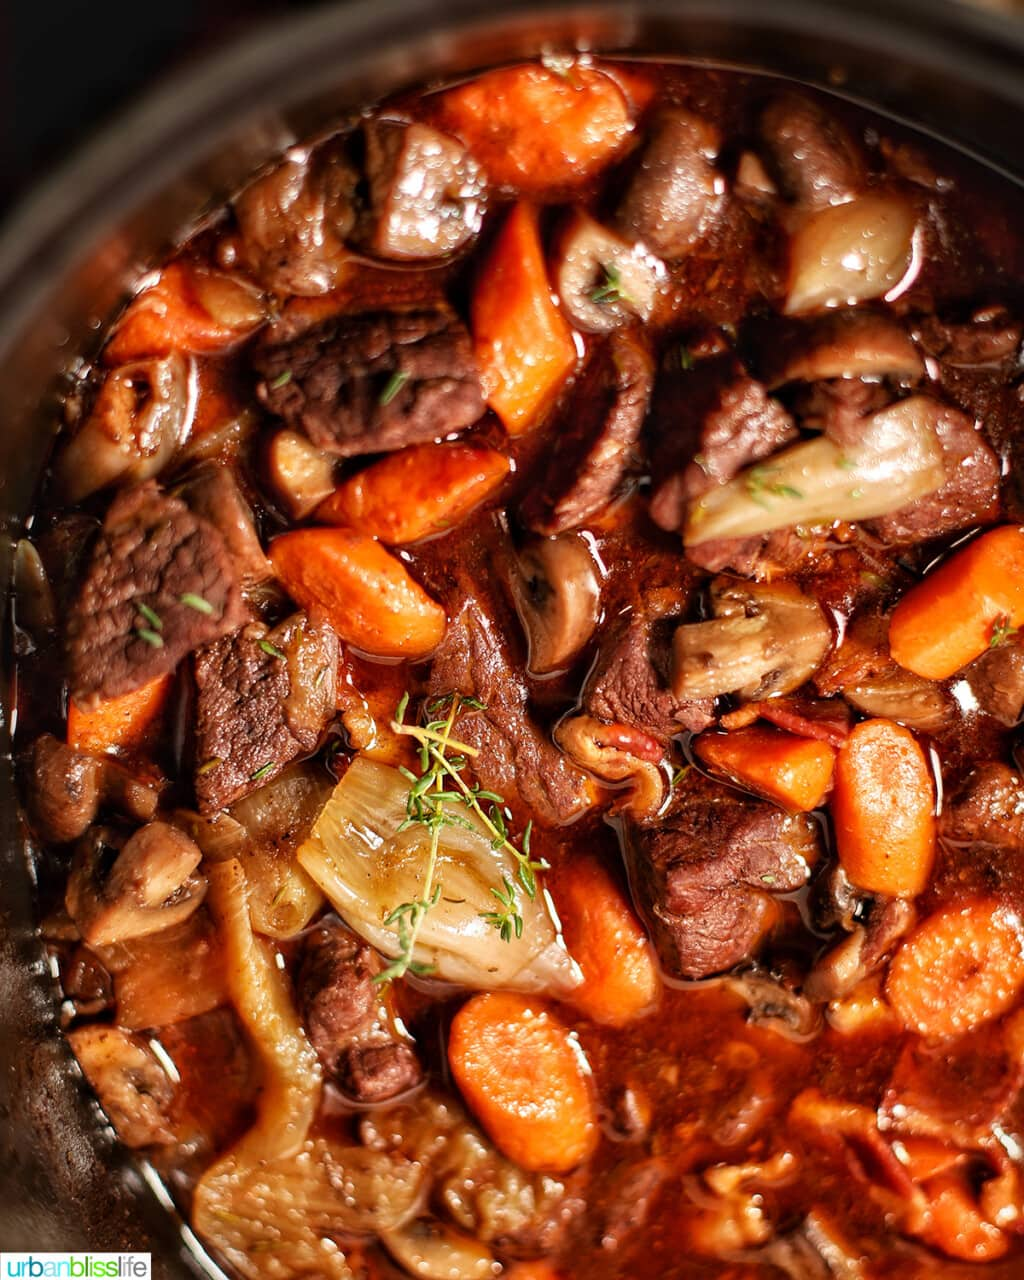 beef bourguignon cooking with bay leaf